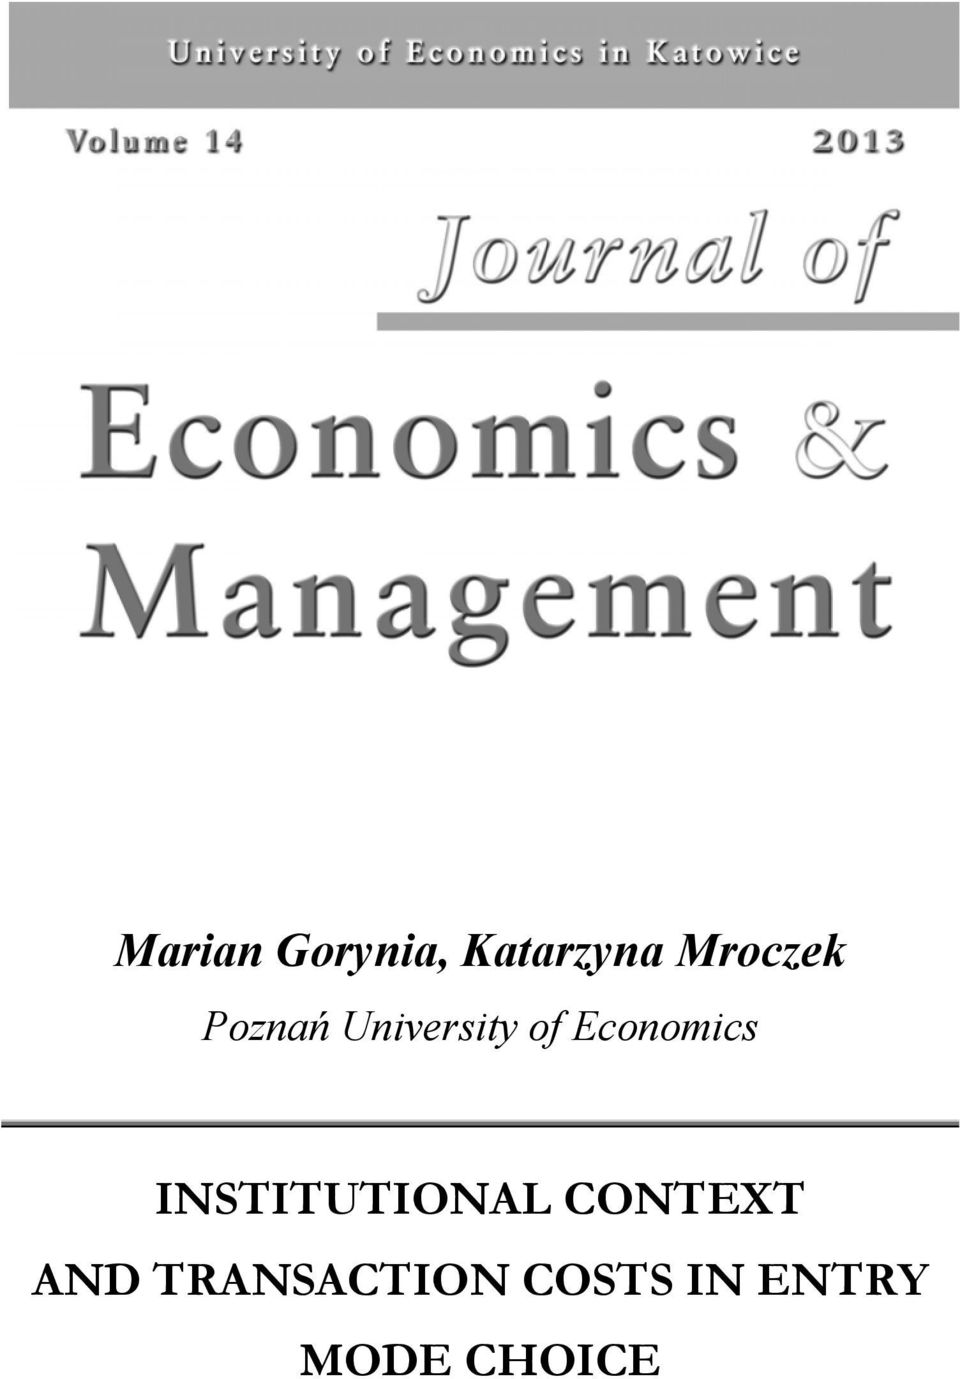 Economics INSTITUTIONAL CONTEXT